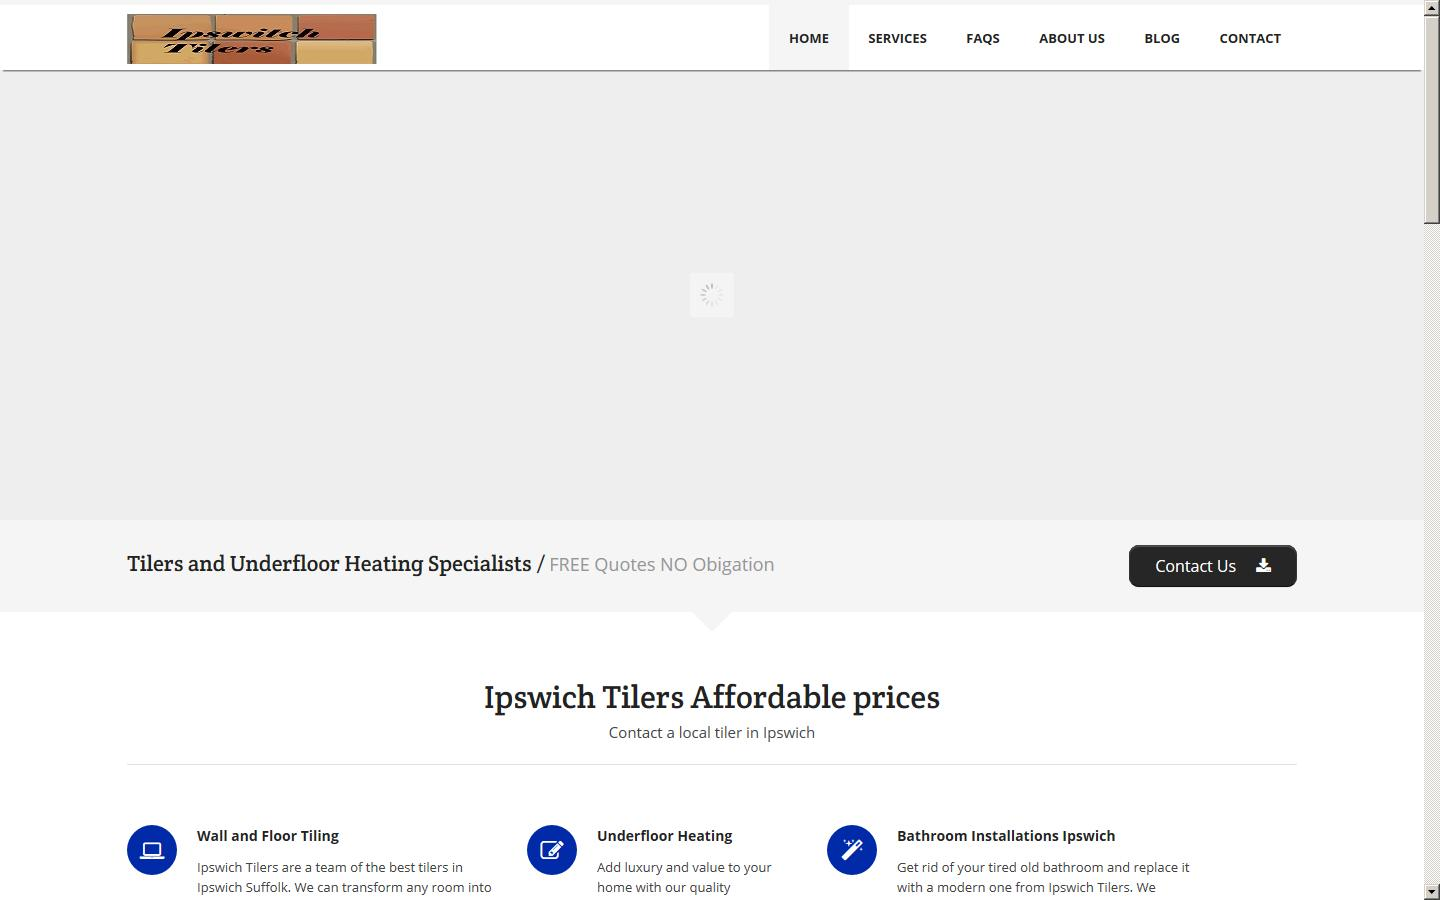 Ipswich tilers ipswich suffolk ip1 6pr our range of tiles include porcelain ceramic glass marble slate and terracotta bathroom installations and underfloor heating are also available at a dailygadgetfo Gallery